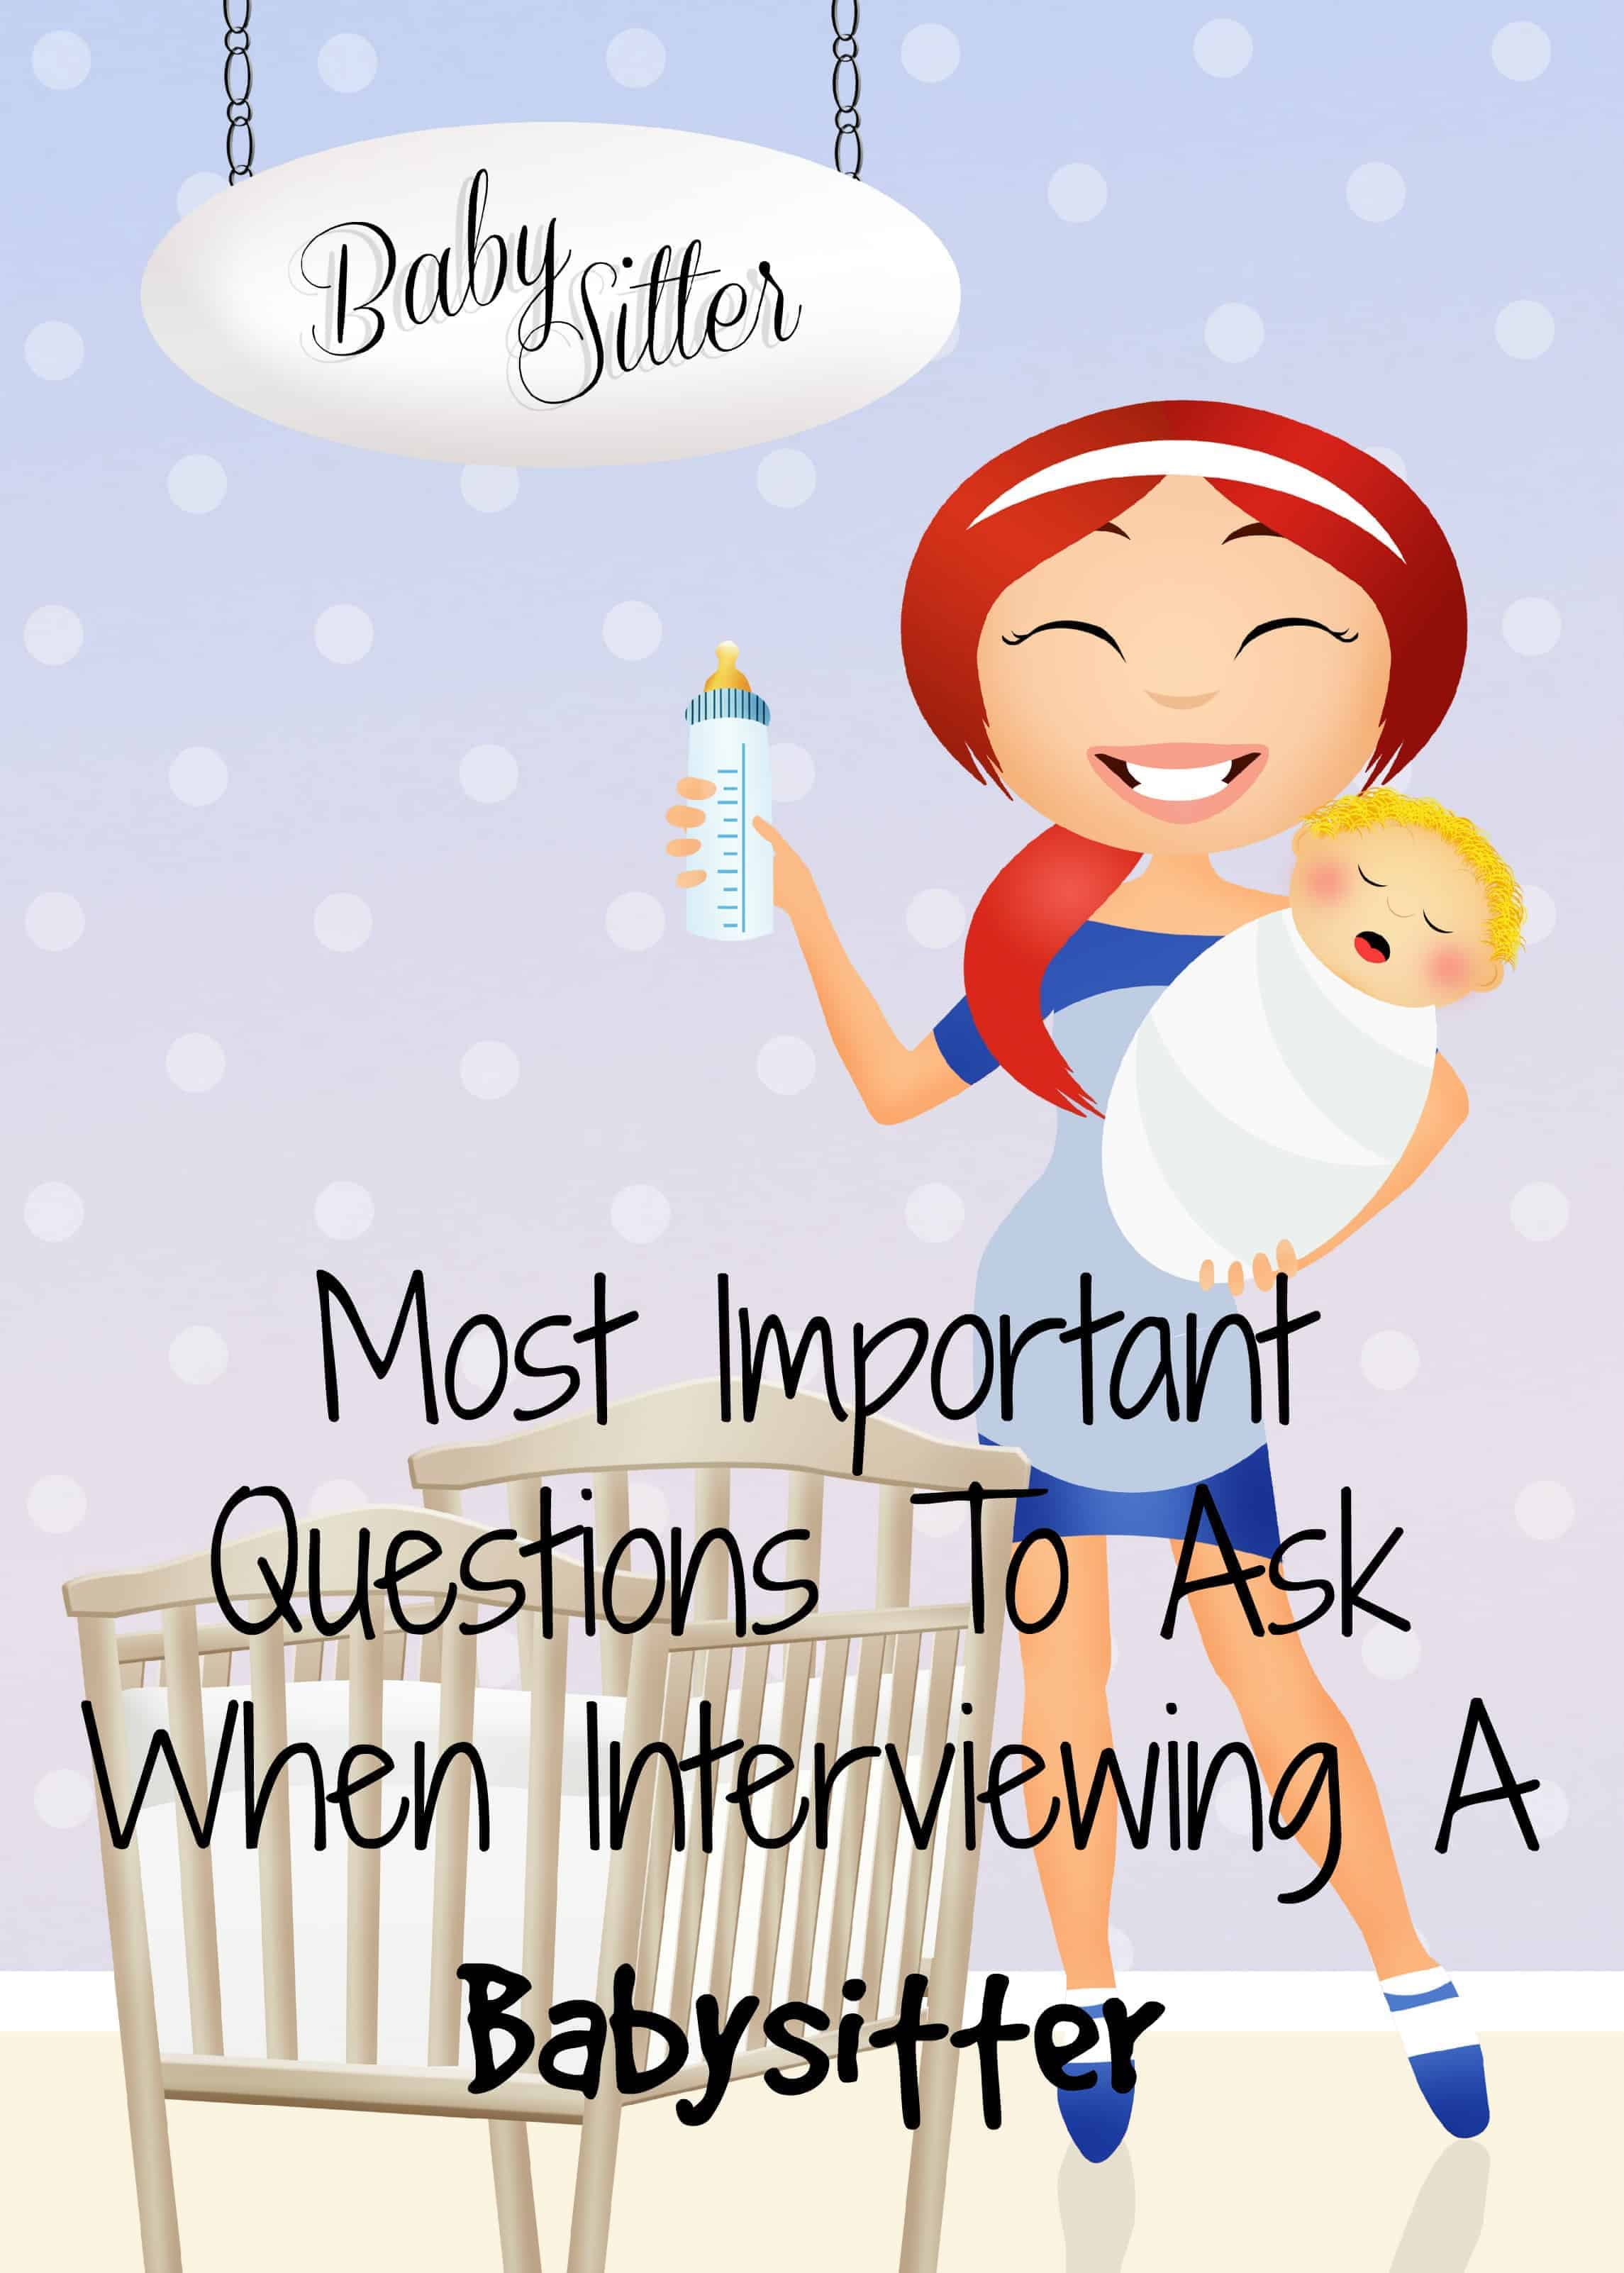 parenting tips important babysitter interview questions what are the important things you need to ask of a new babysitter after all you are putting them in charge of your most precious possessions